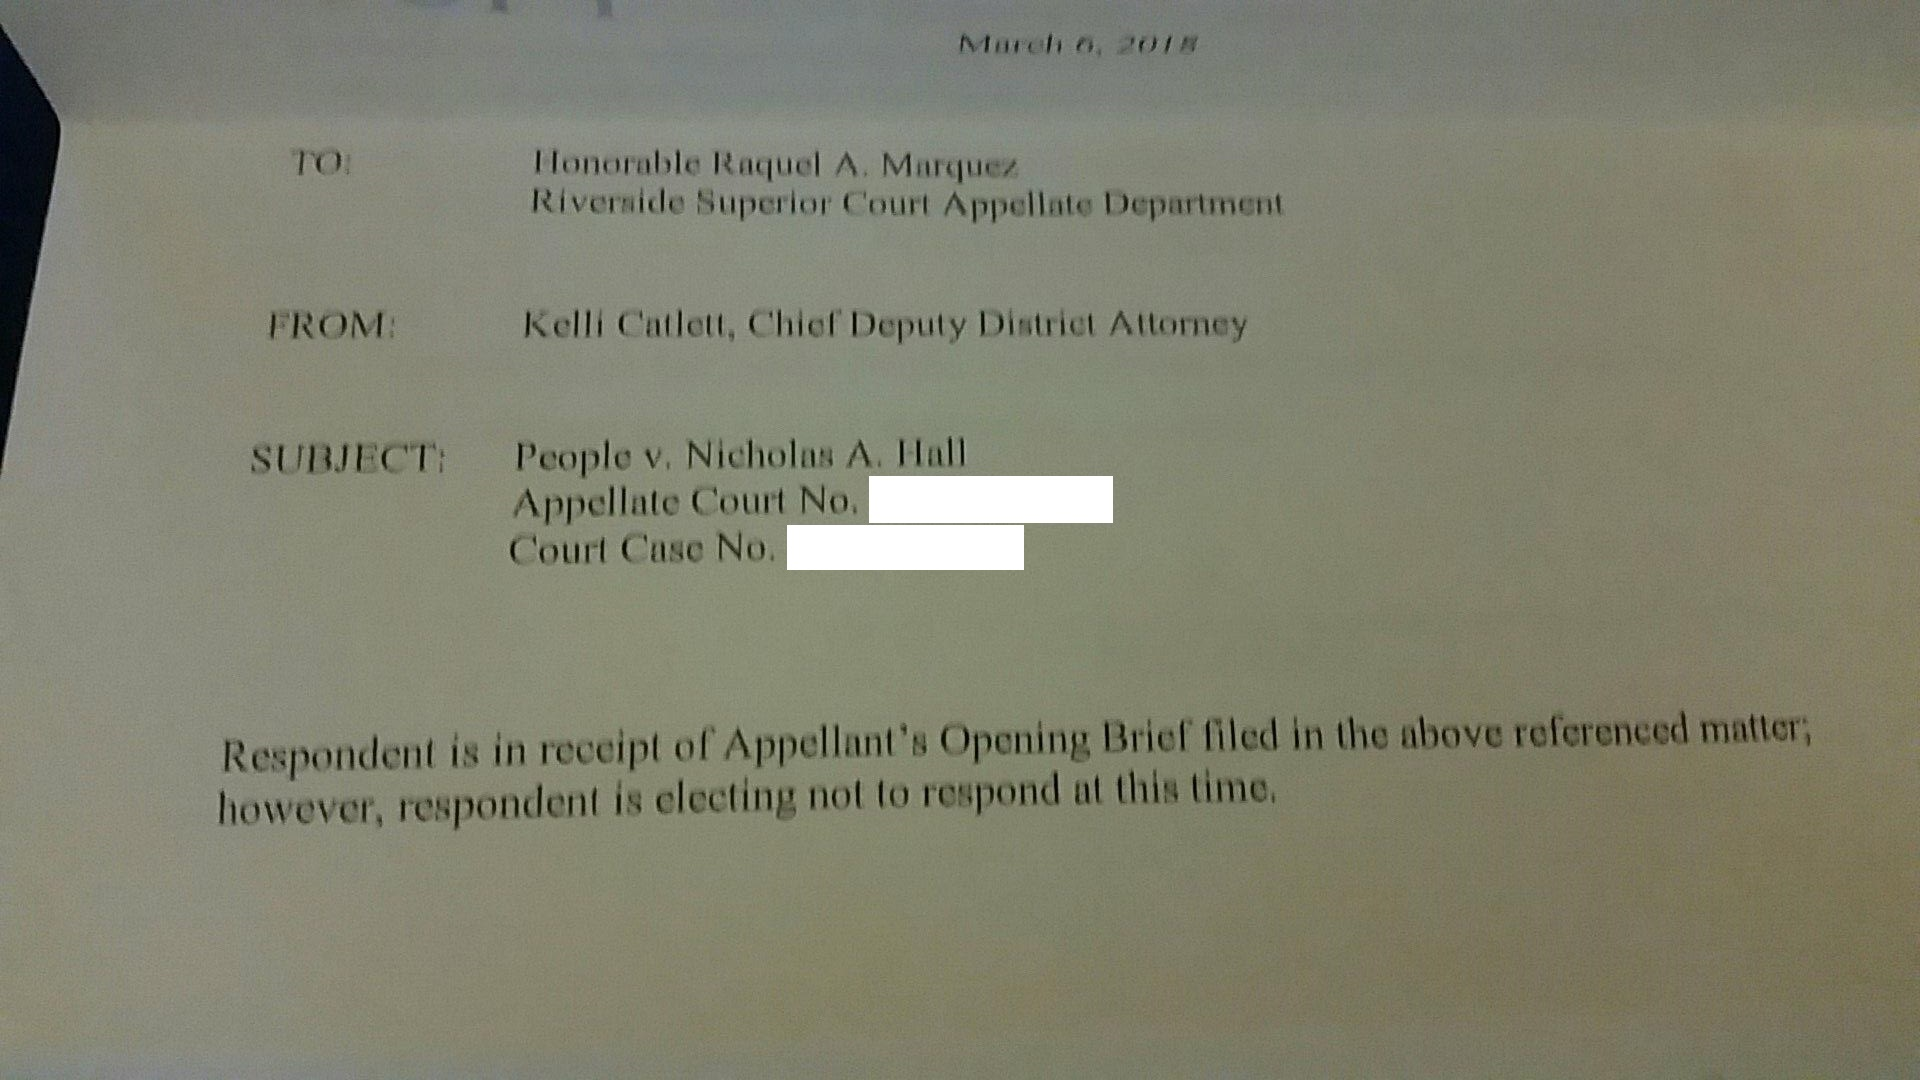 Appellee's Opening Brief – Response from District Attorney's